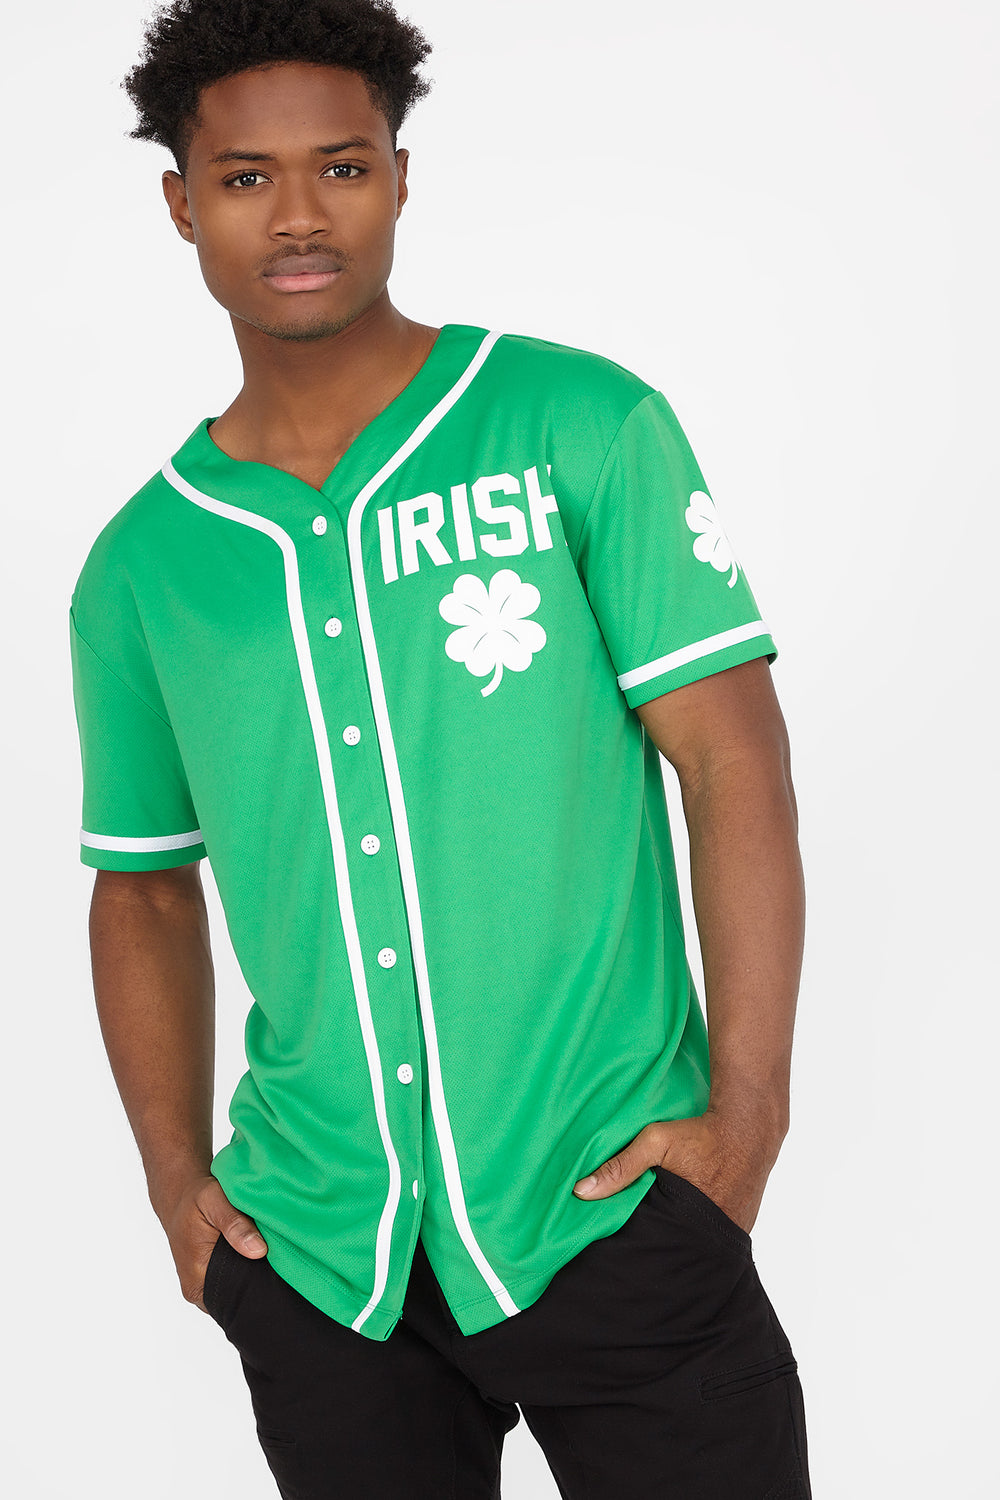 St. Patrick's Day Drinking Team Baseball Jersey Green